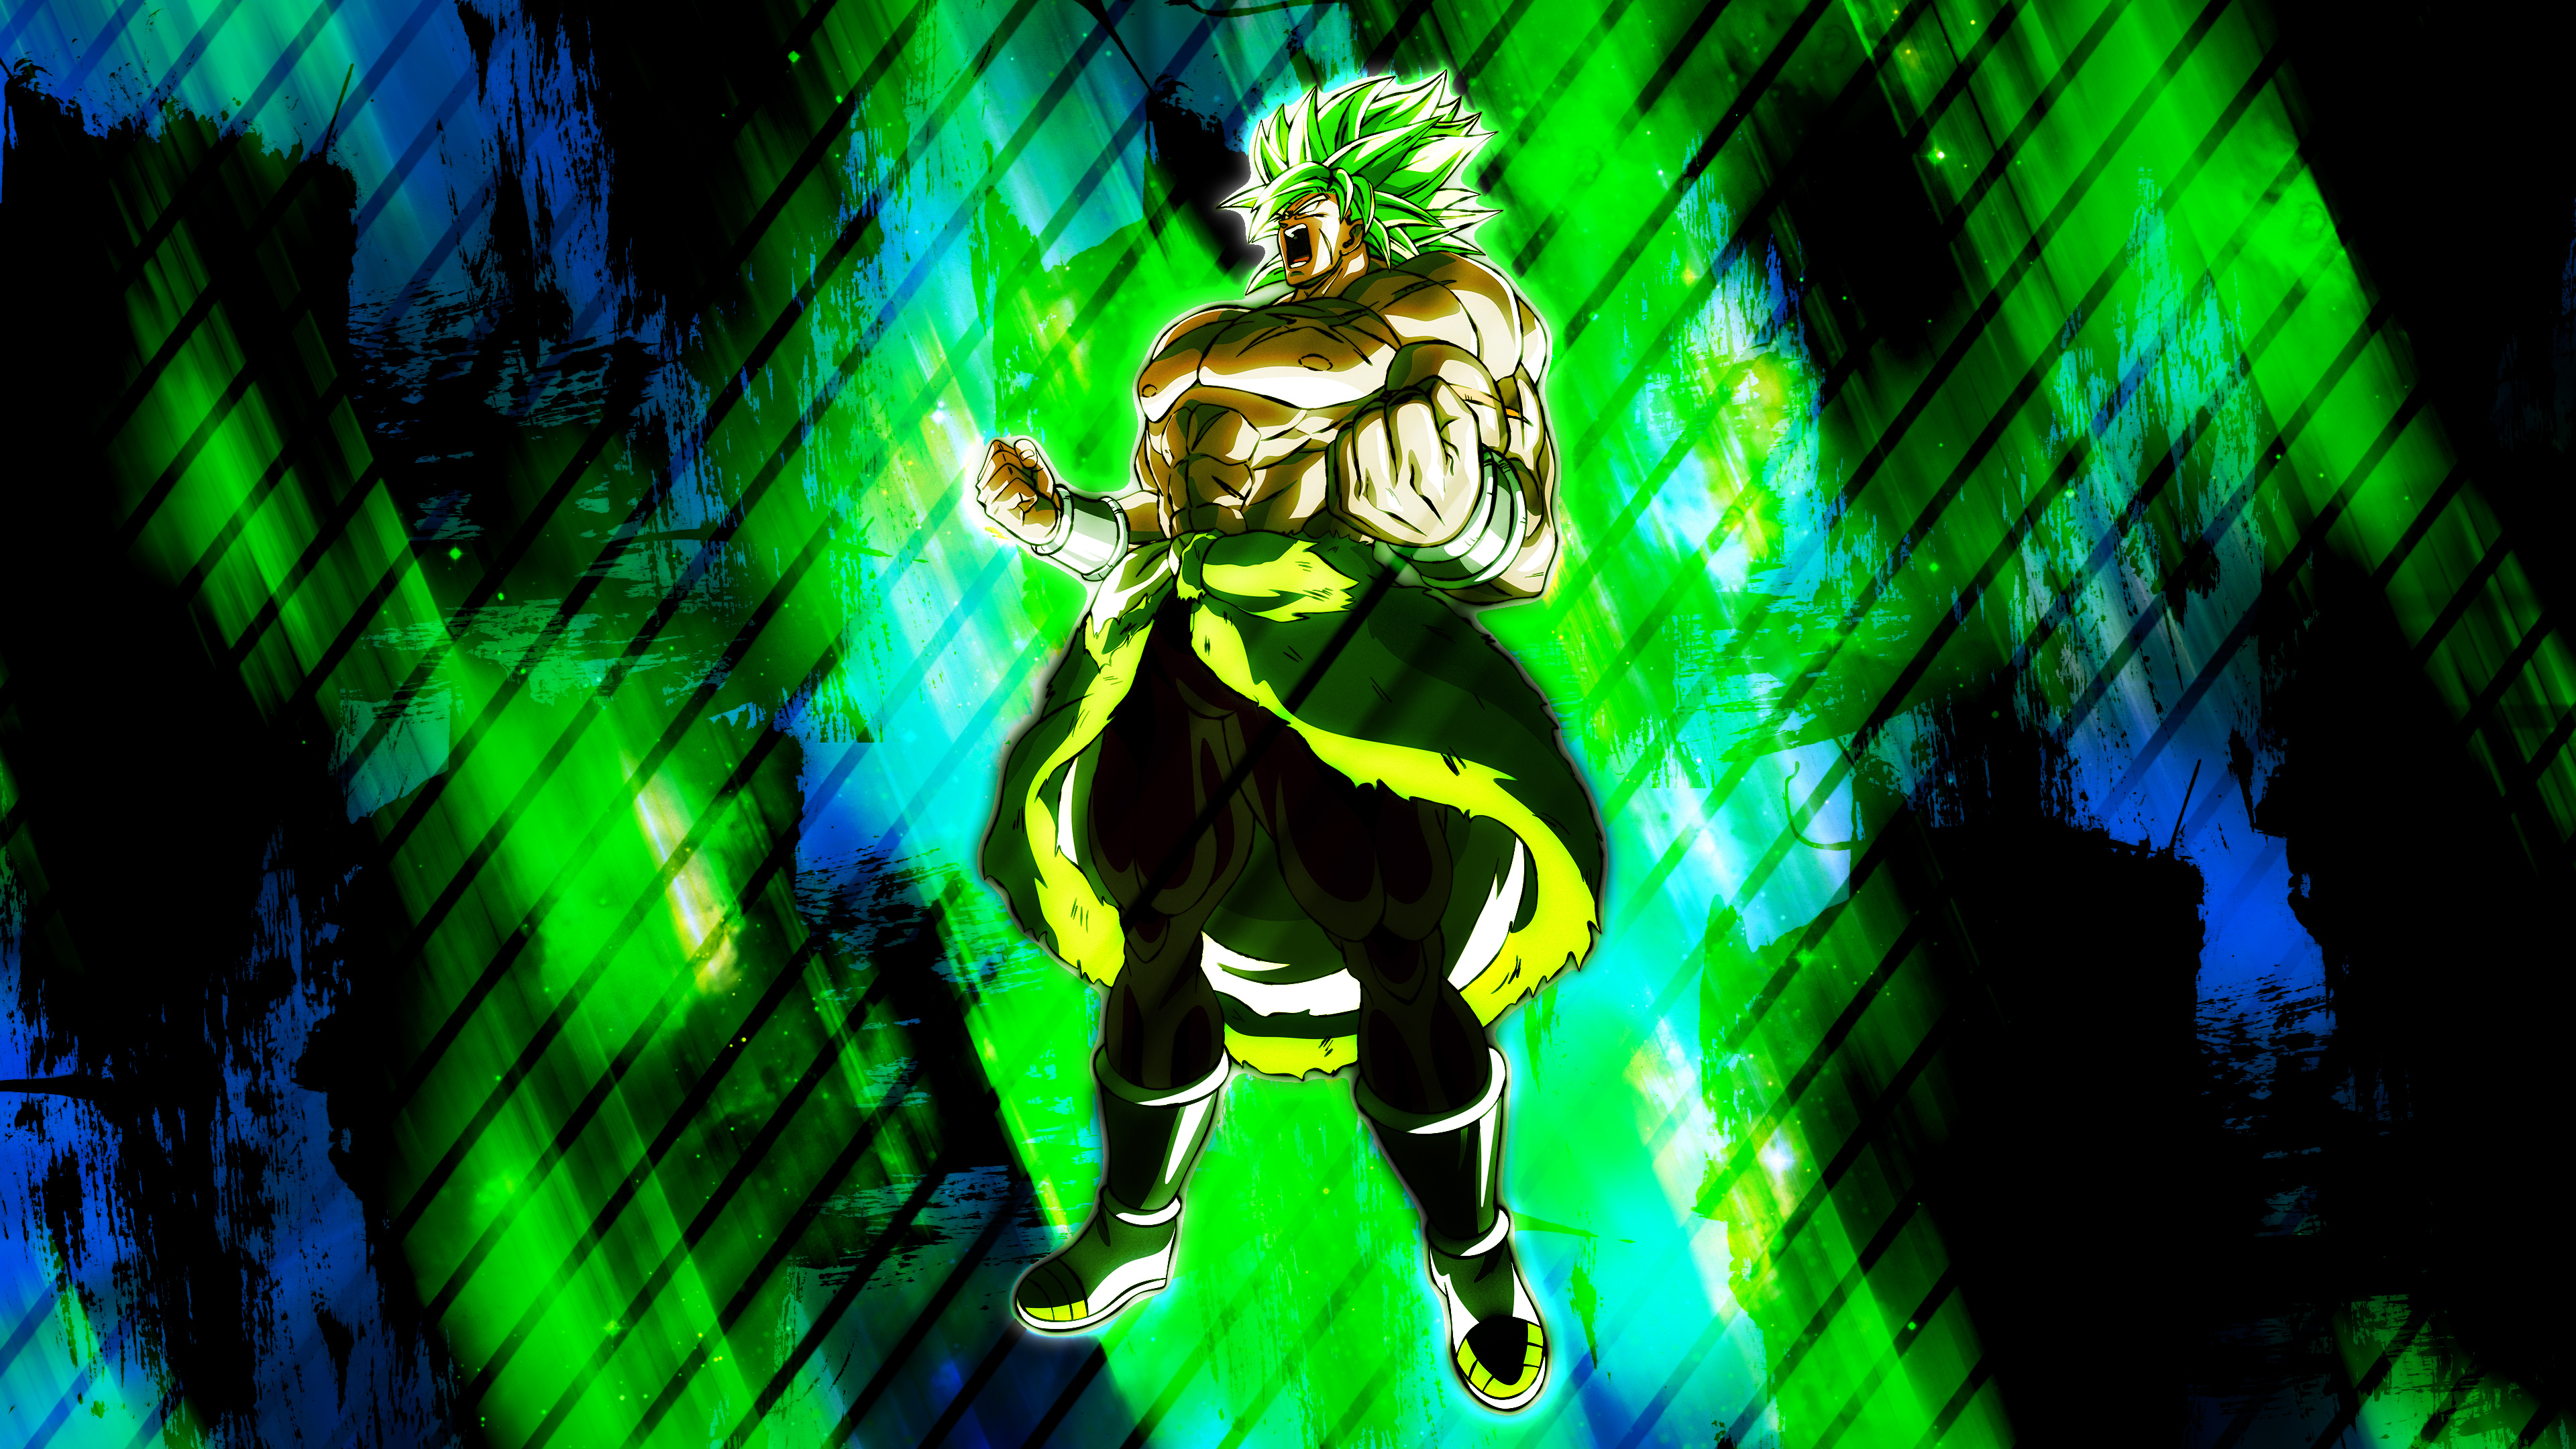 Unstoppable Broly 4K Wallpaper HD Anime 4K Wallpapers Images 3840x2160